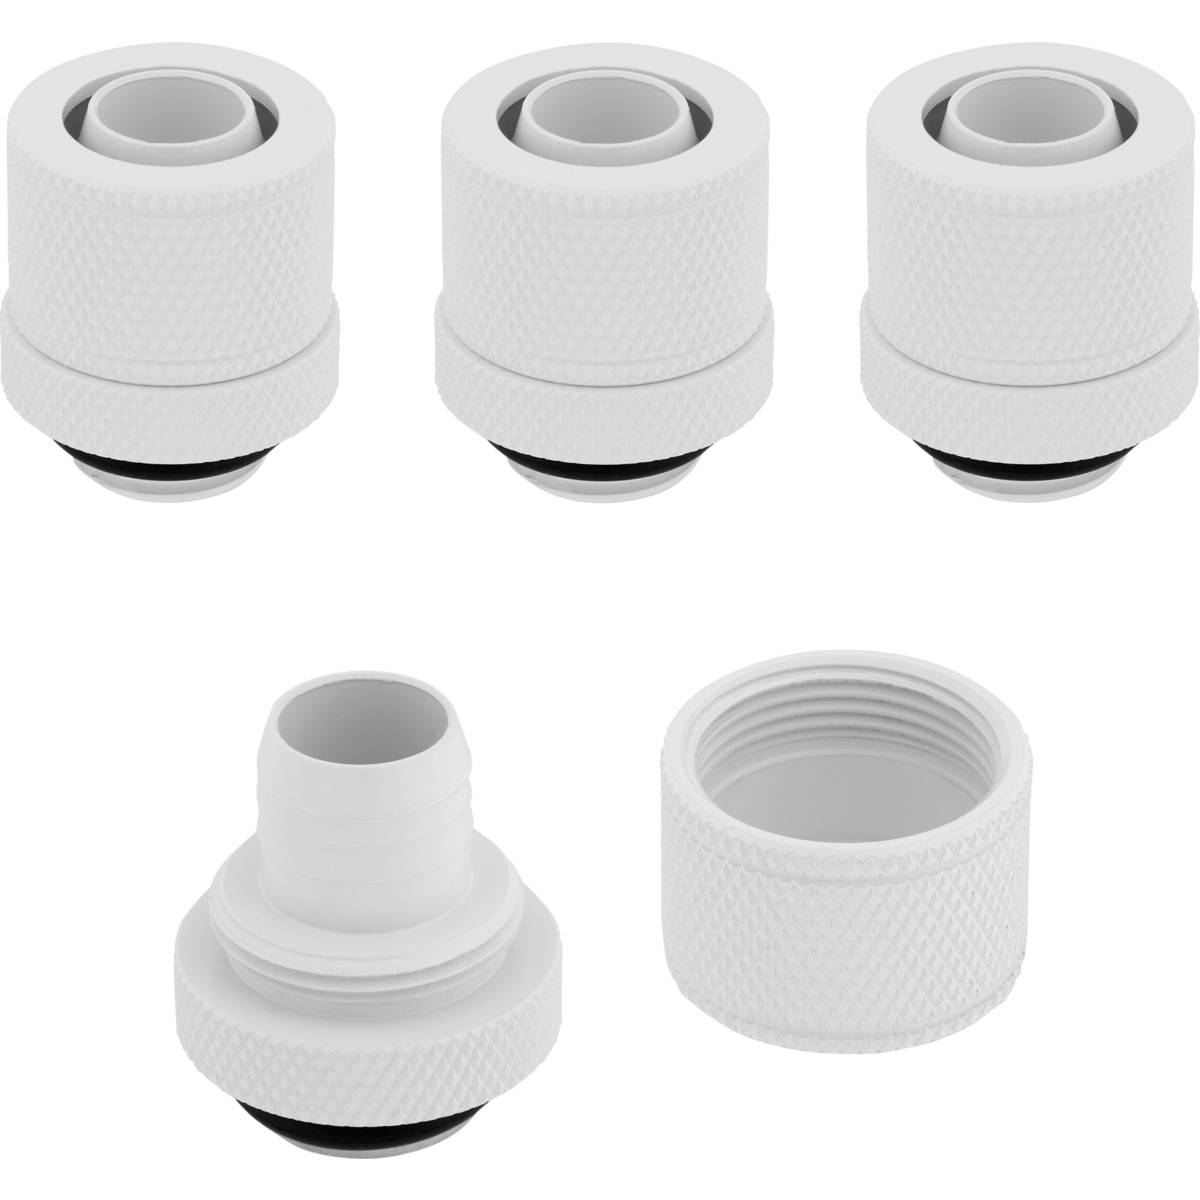 "CORSAIR Hydro X Series XF Compression 10/13mm (3/8"" / 1/2"") ID/OD Fitting Four Pack - White"